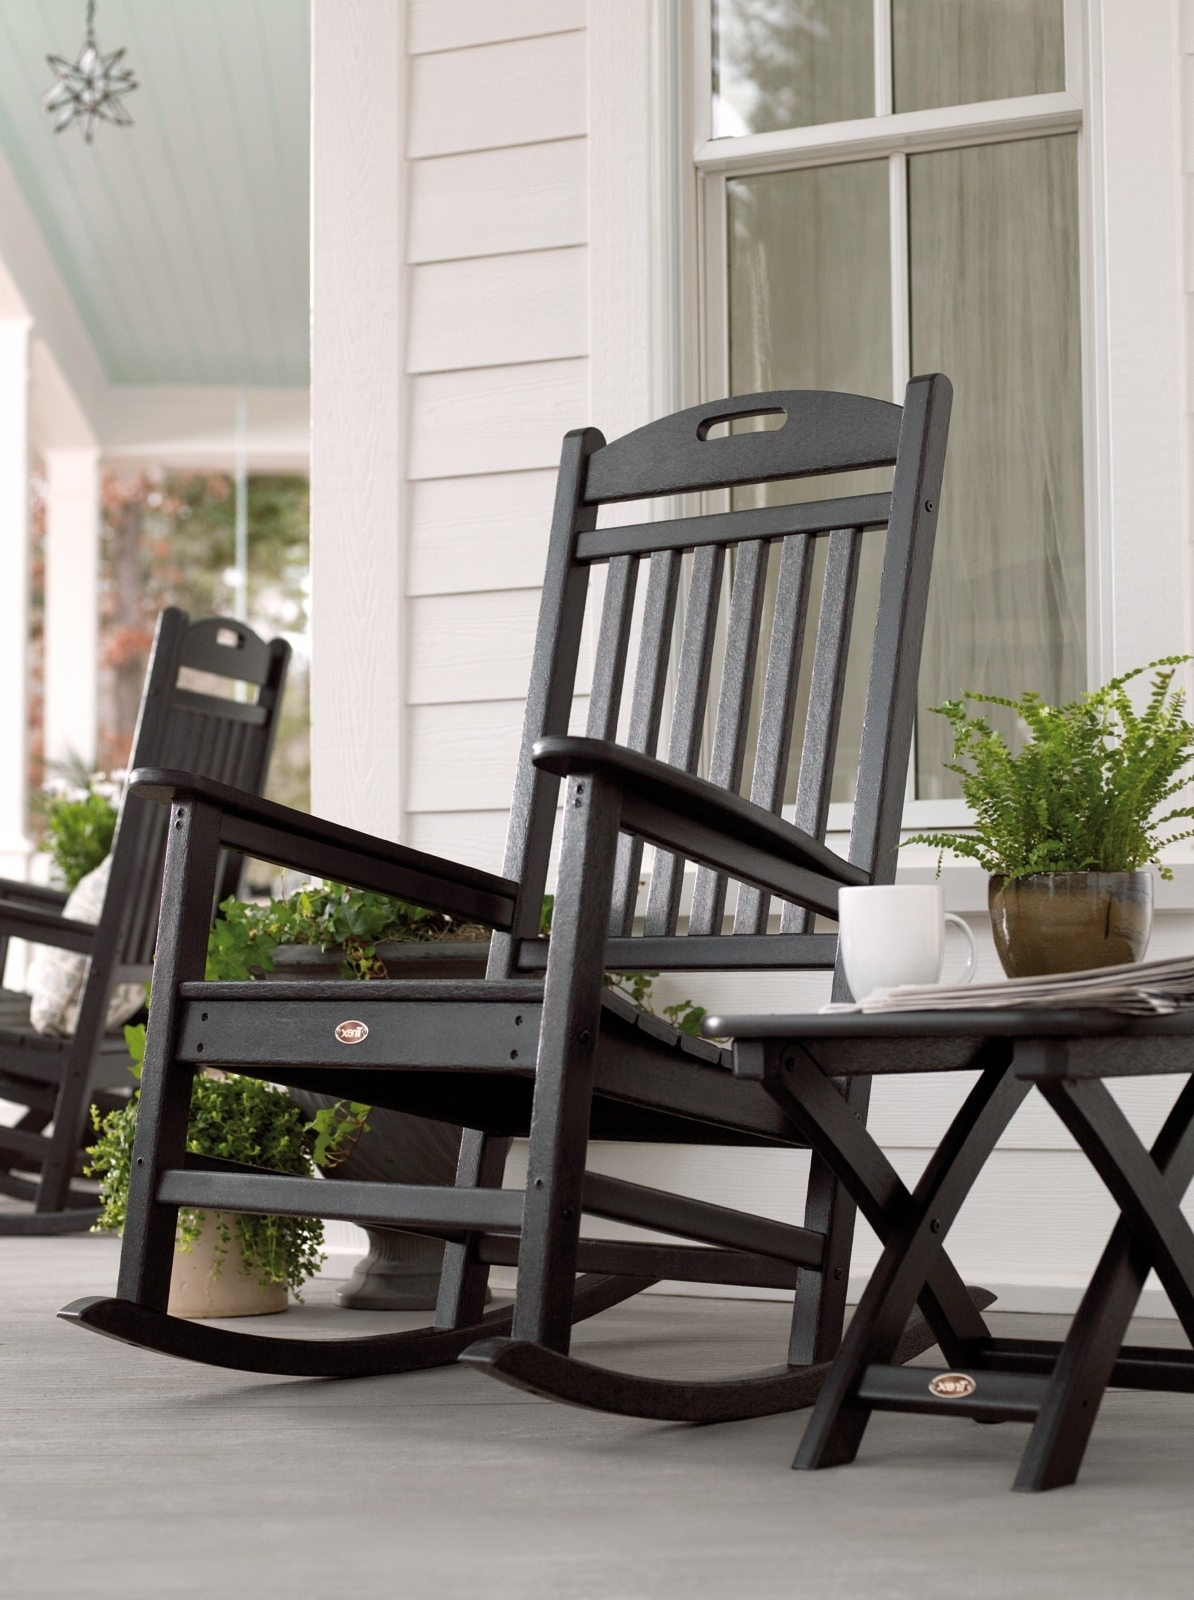 Preferred Patio & Garden : Outdoor Rocking Chair Seat Cushions Outdoor Rocking Within Outside Rocking Chair Sets (View 3 of 15)